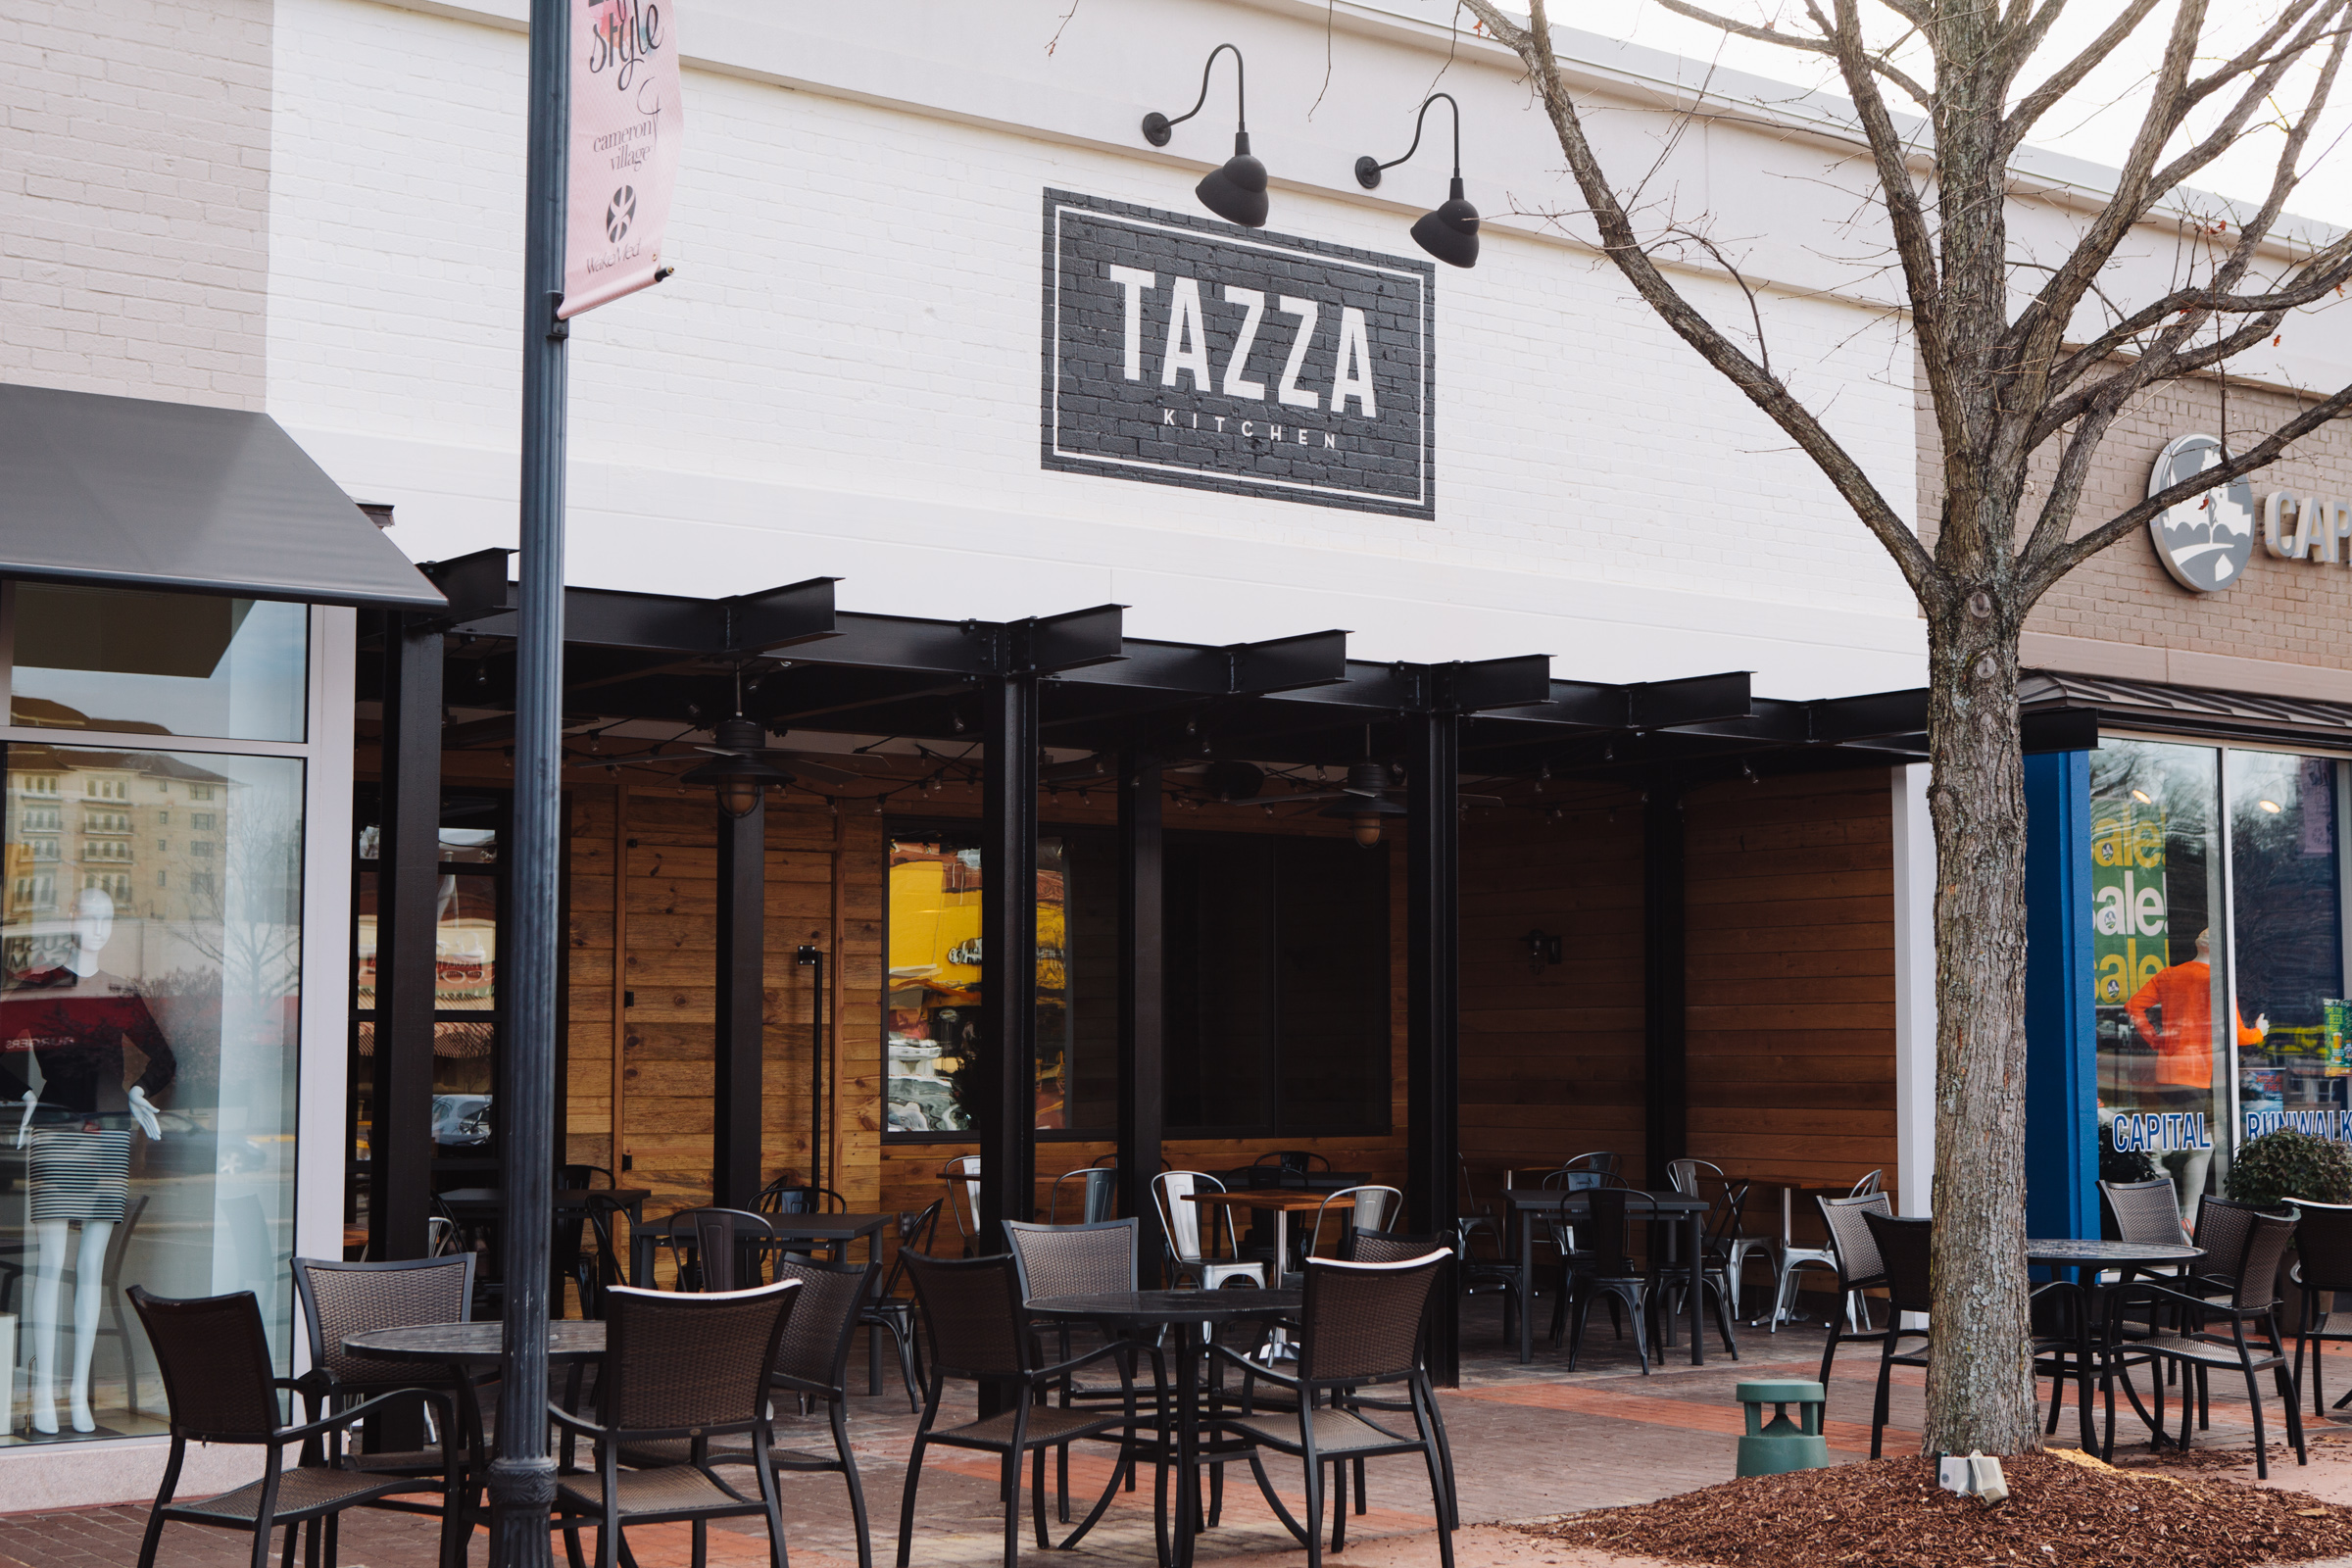 tazza kitchen in raleigh's cameron village opens tuesday